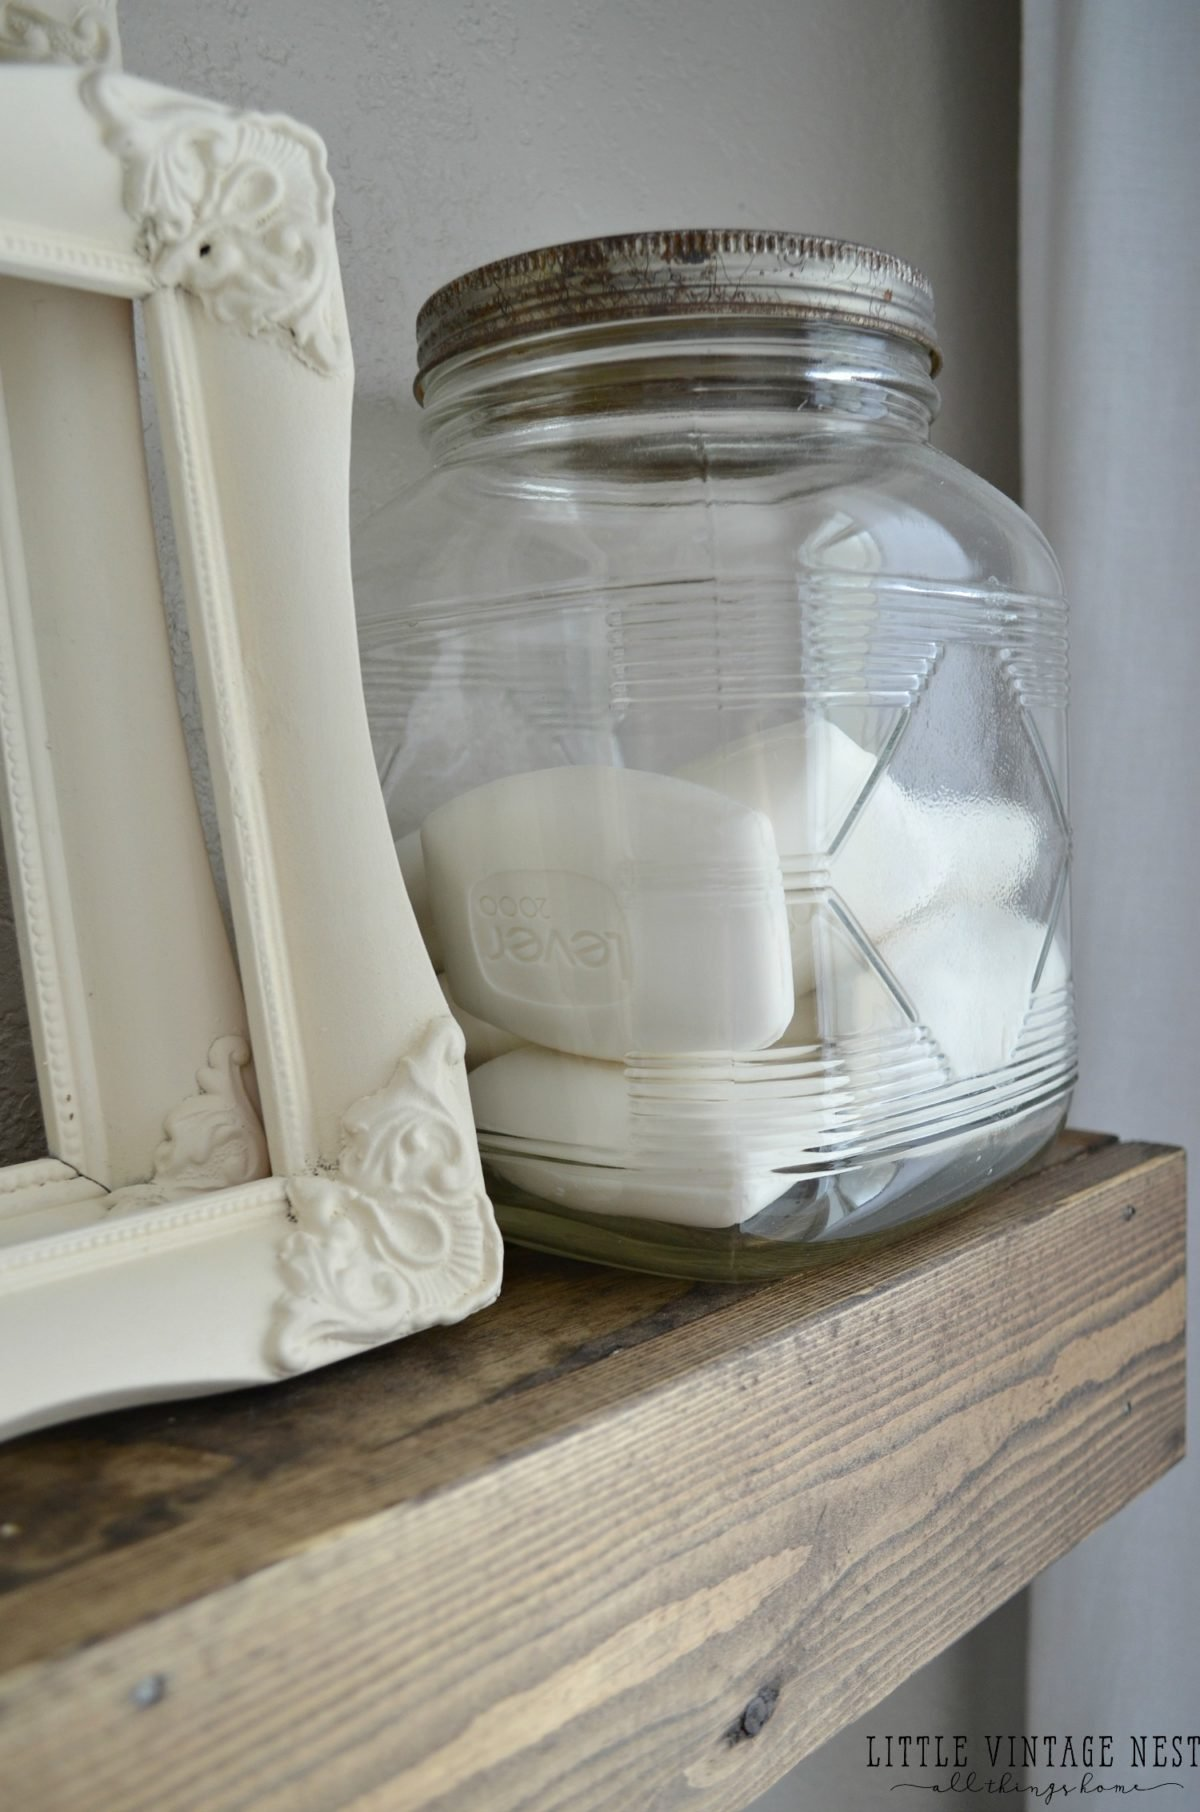 How to Decorate with Vintage Decor::Glass Jar used for soap